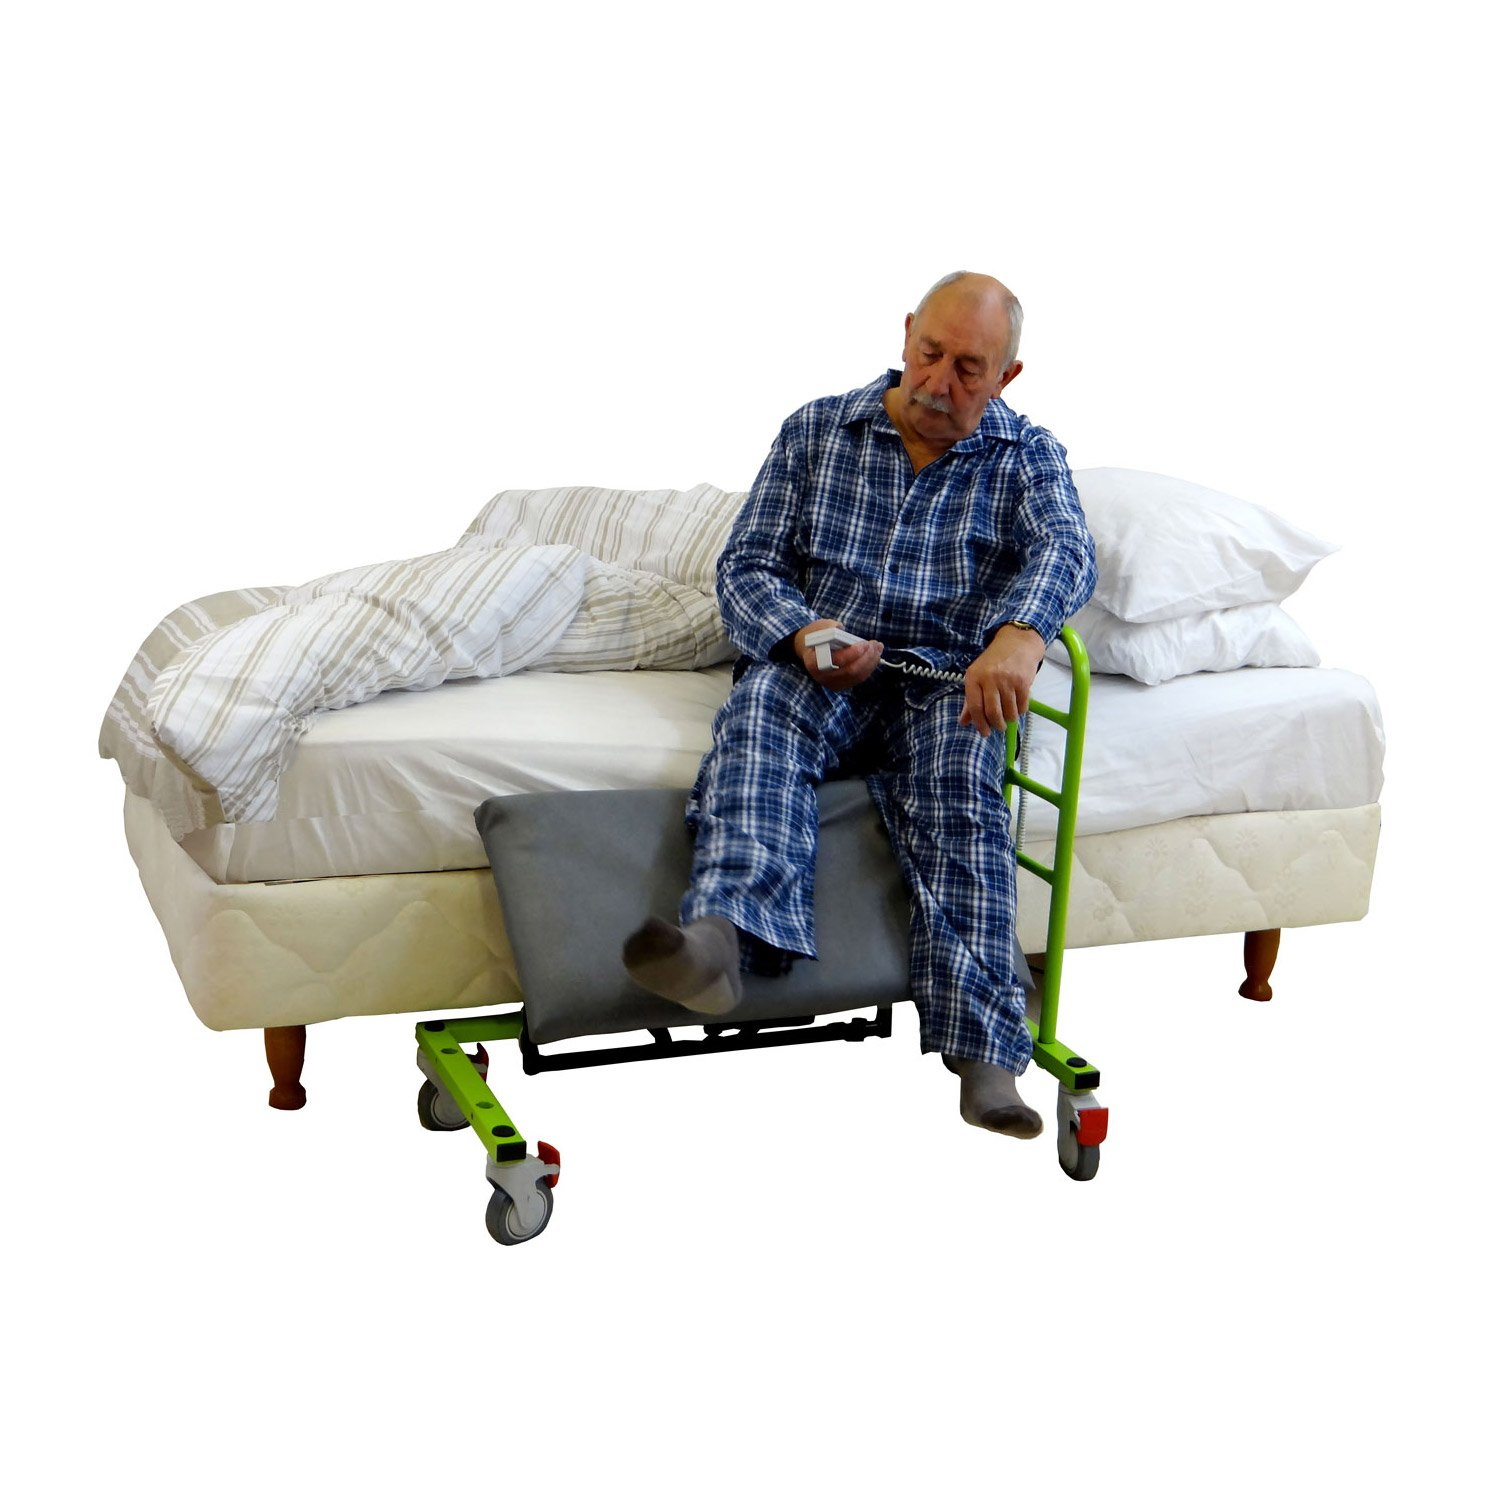 Inflatable Beds With Legs: Sofa Leg Lifters Leg For Sofa Sofas And Benches Couch